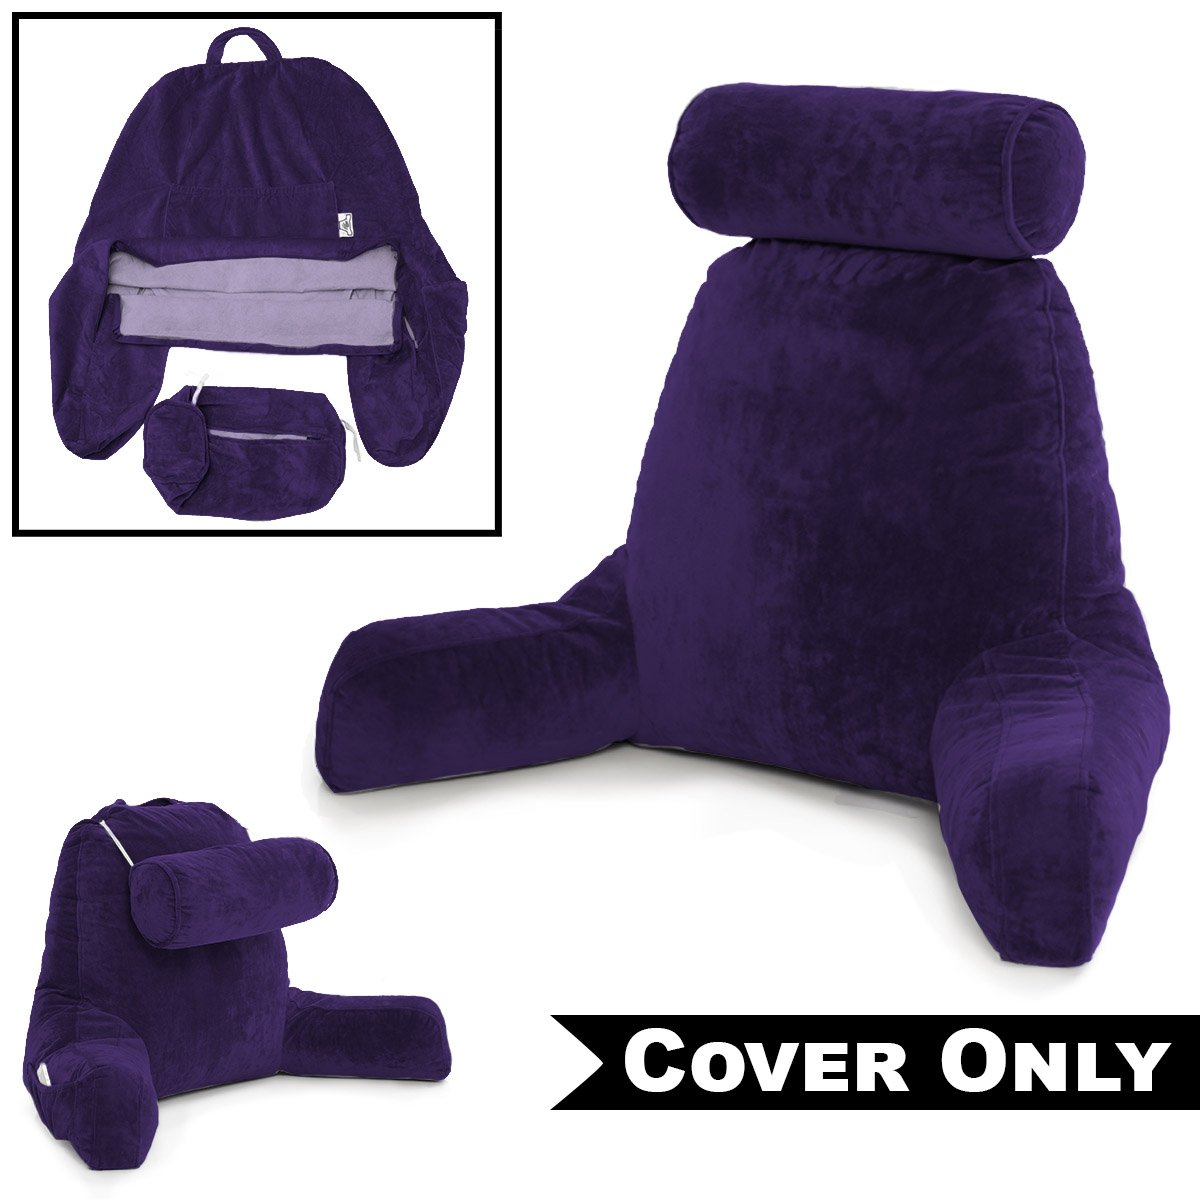 Husband Pillow Dark Purple COVER ONLY - For the Bedrest Cover Set - Support Bed Backrest Cover, Micro-Plush Cover Including Detachable Neck Roll Pillow Cover